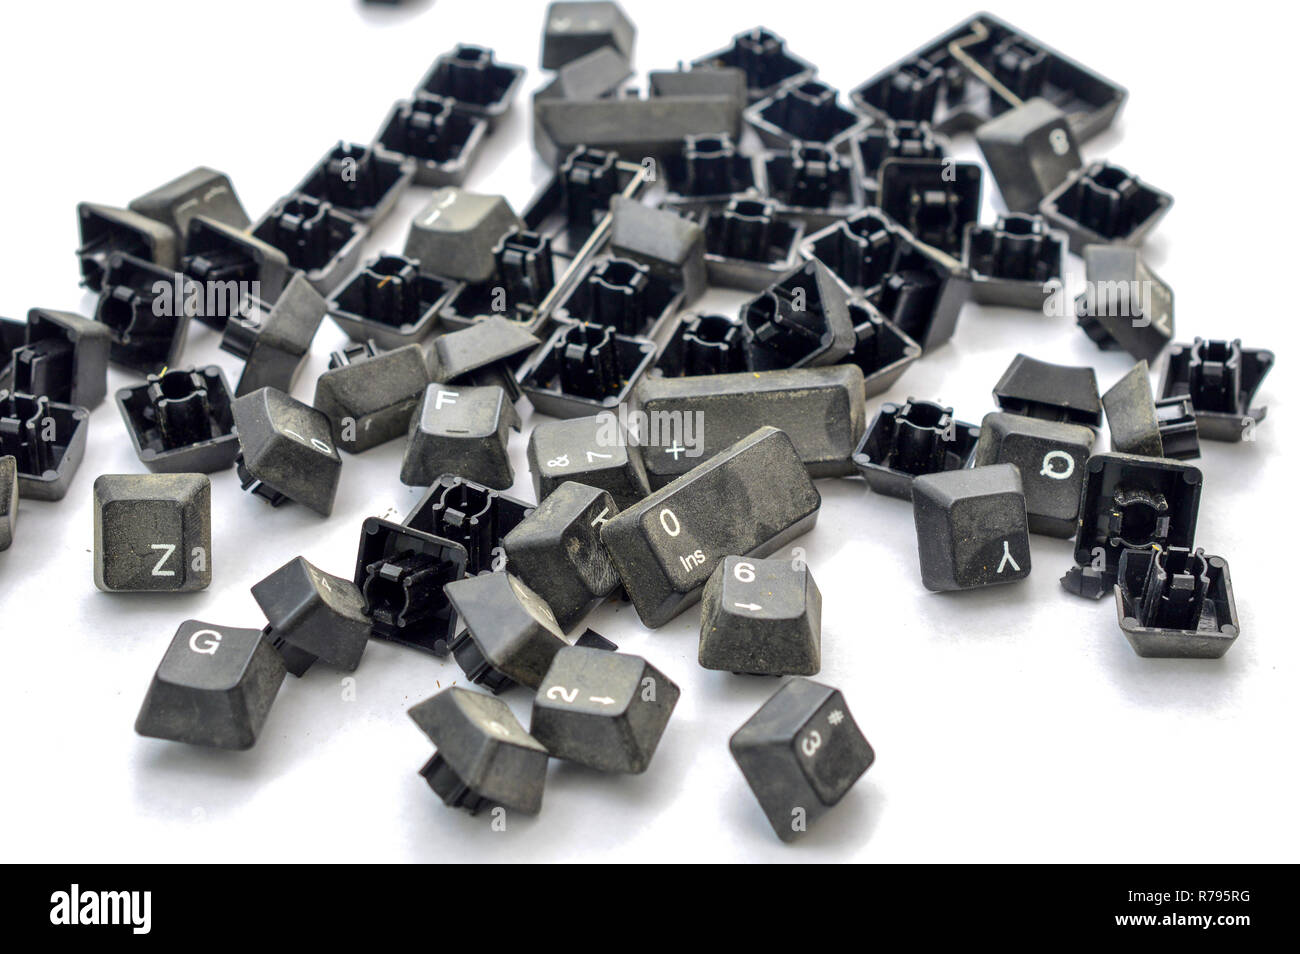 old dirty disassembled copmuter buttons on white background,image - Stock Image